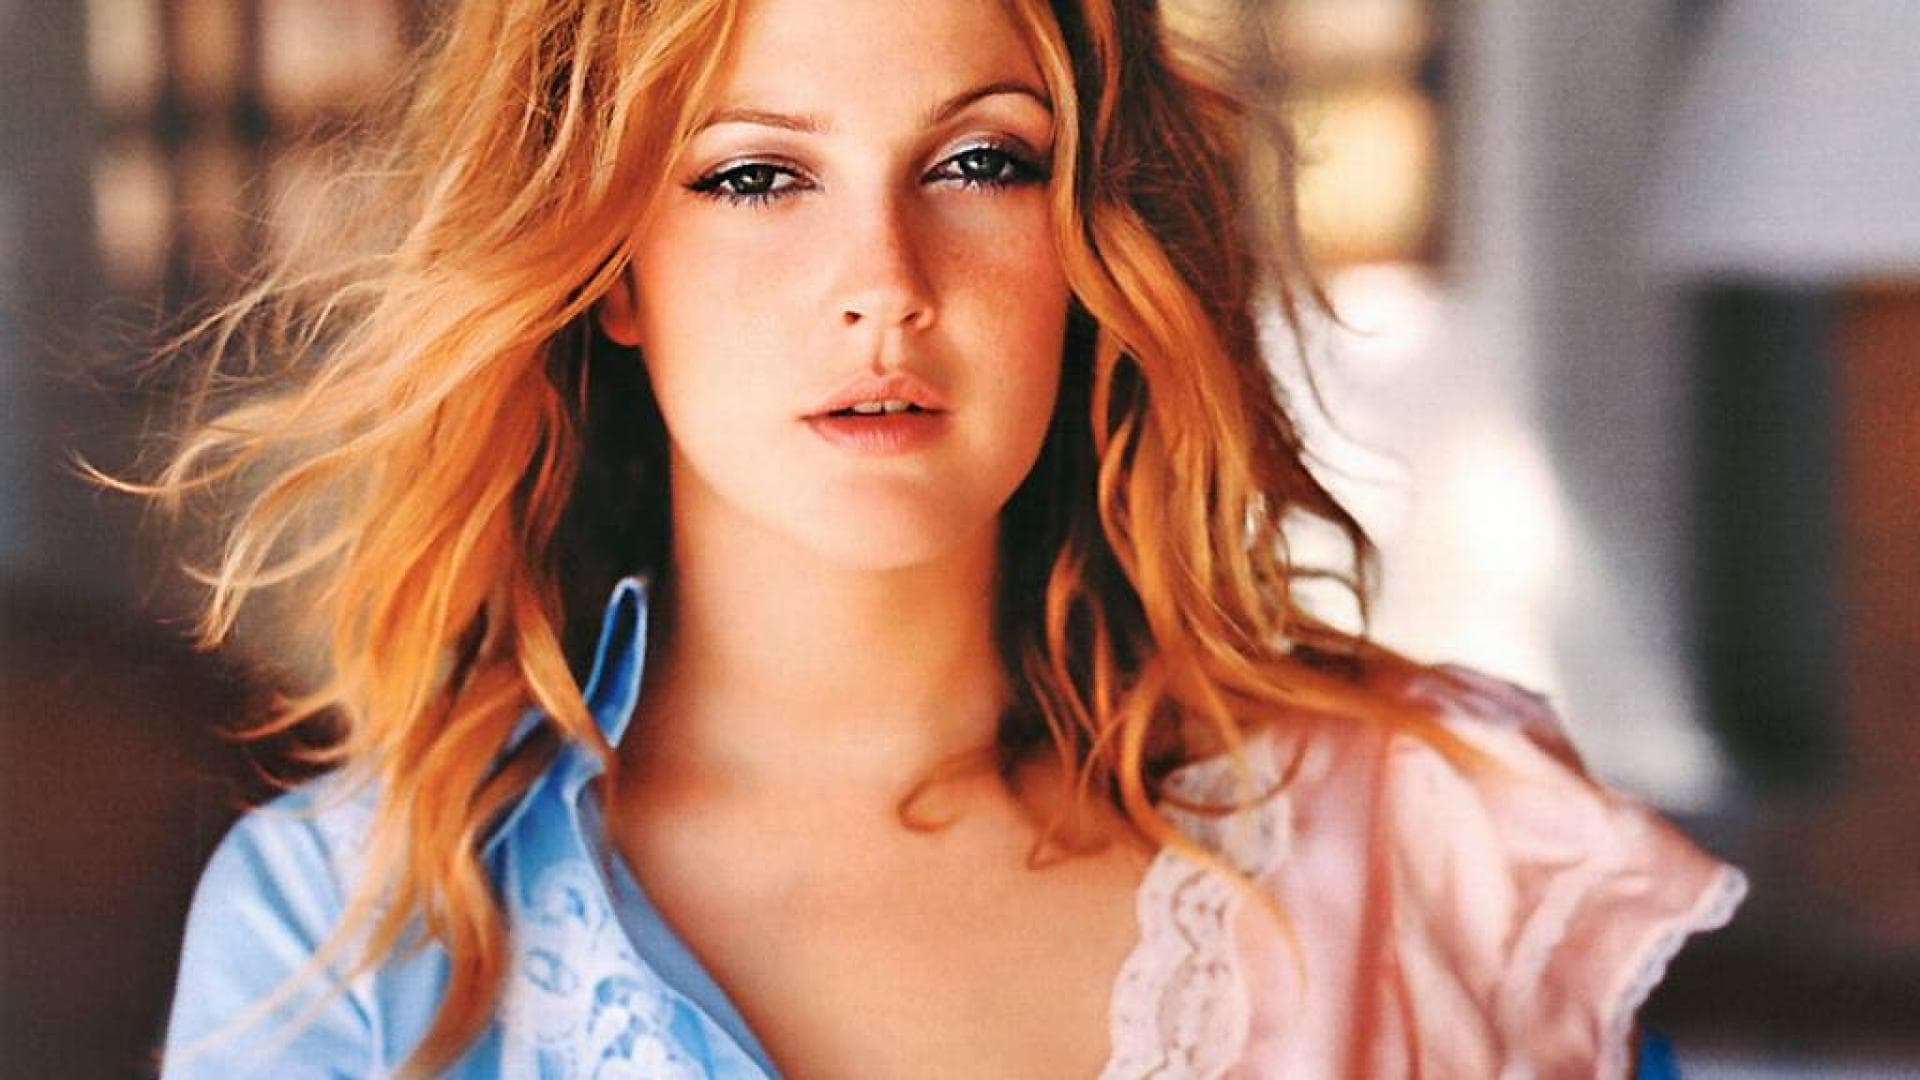 Drew Barrymore Download